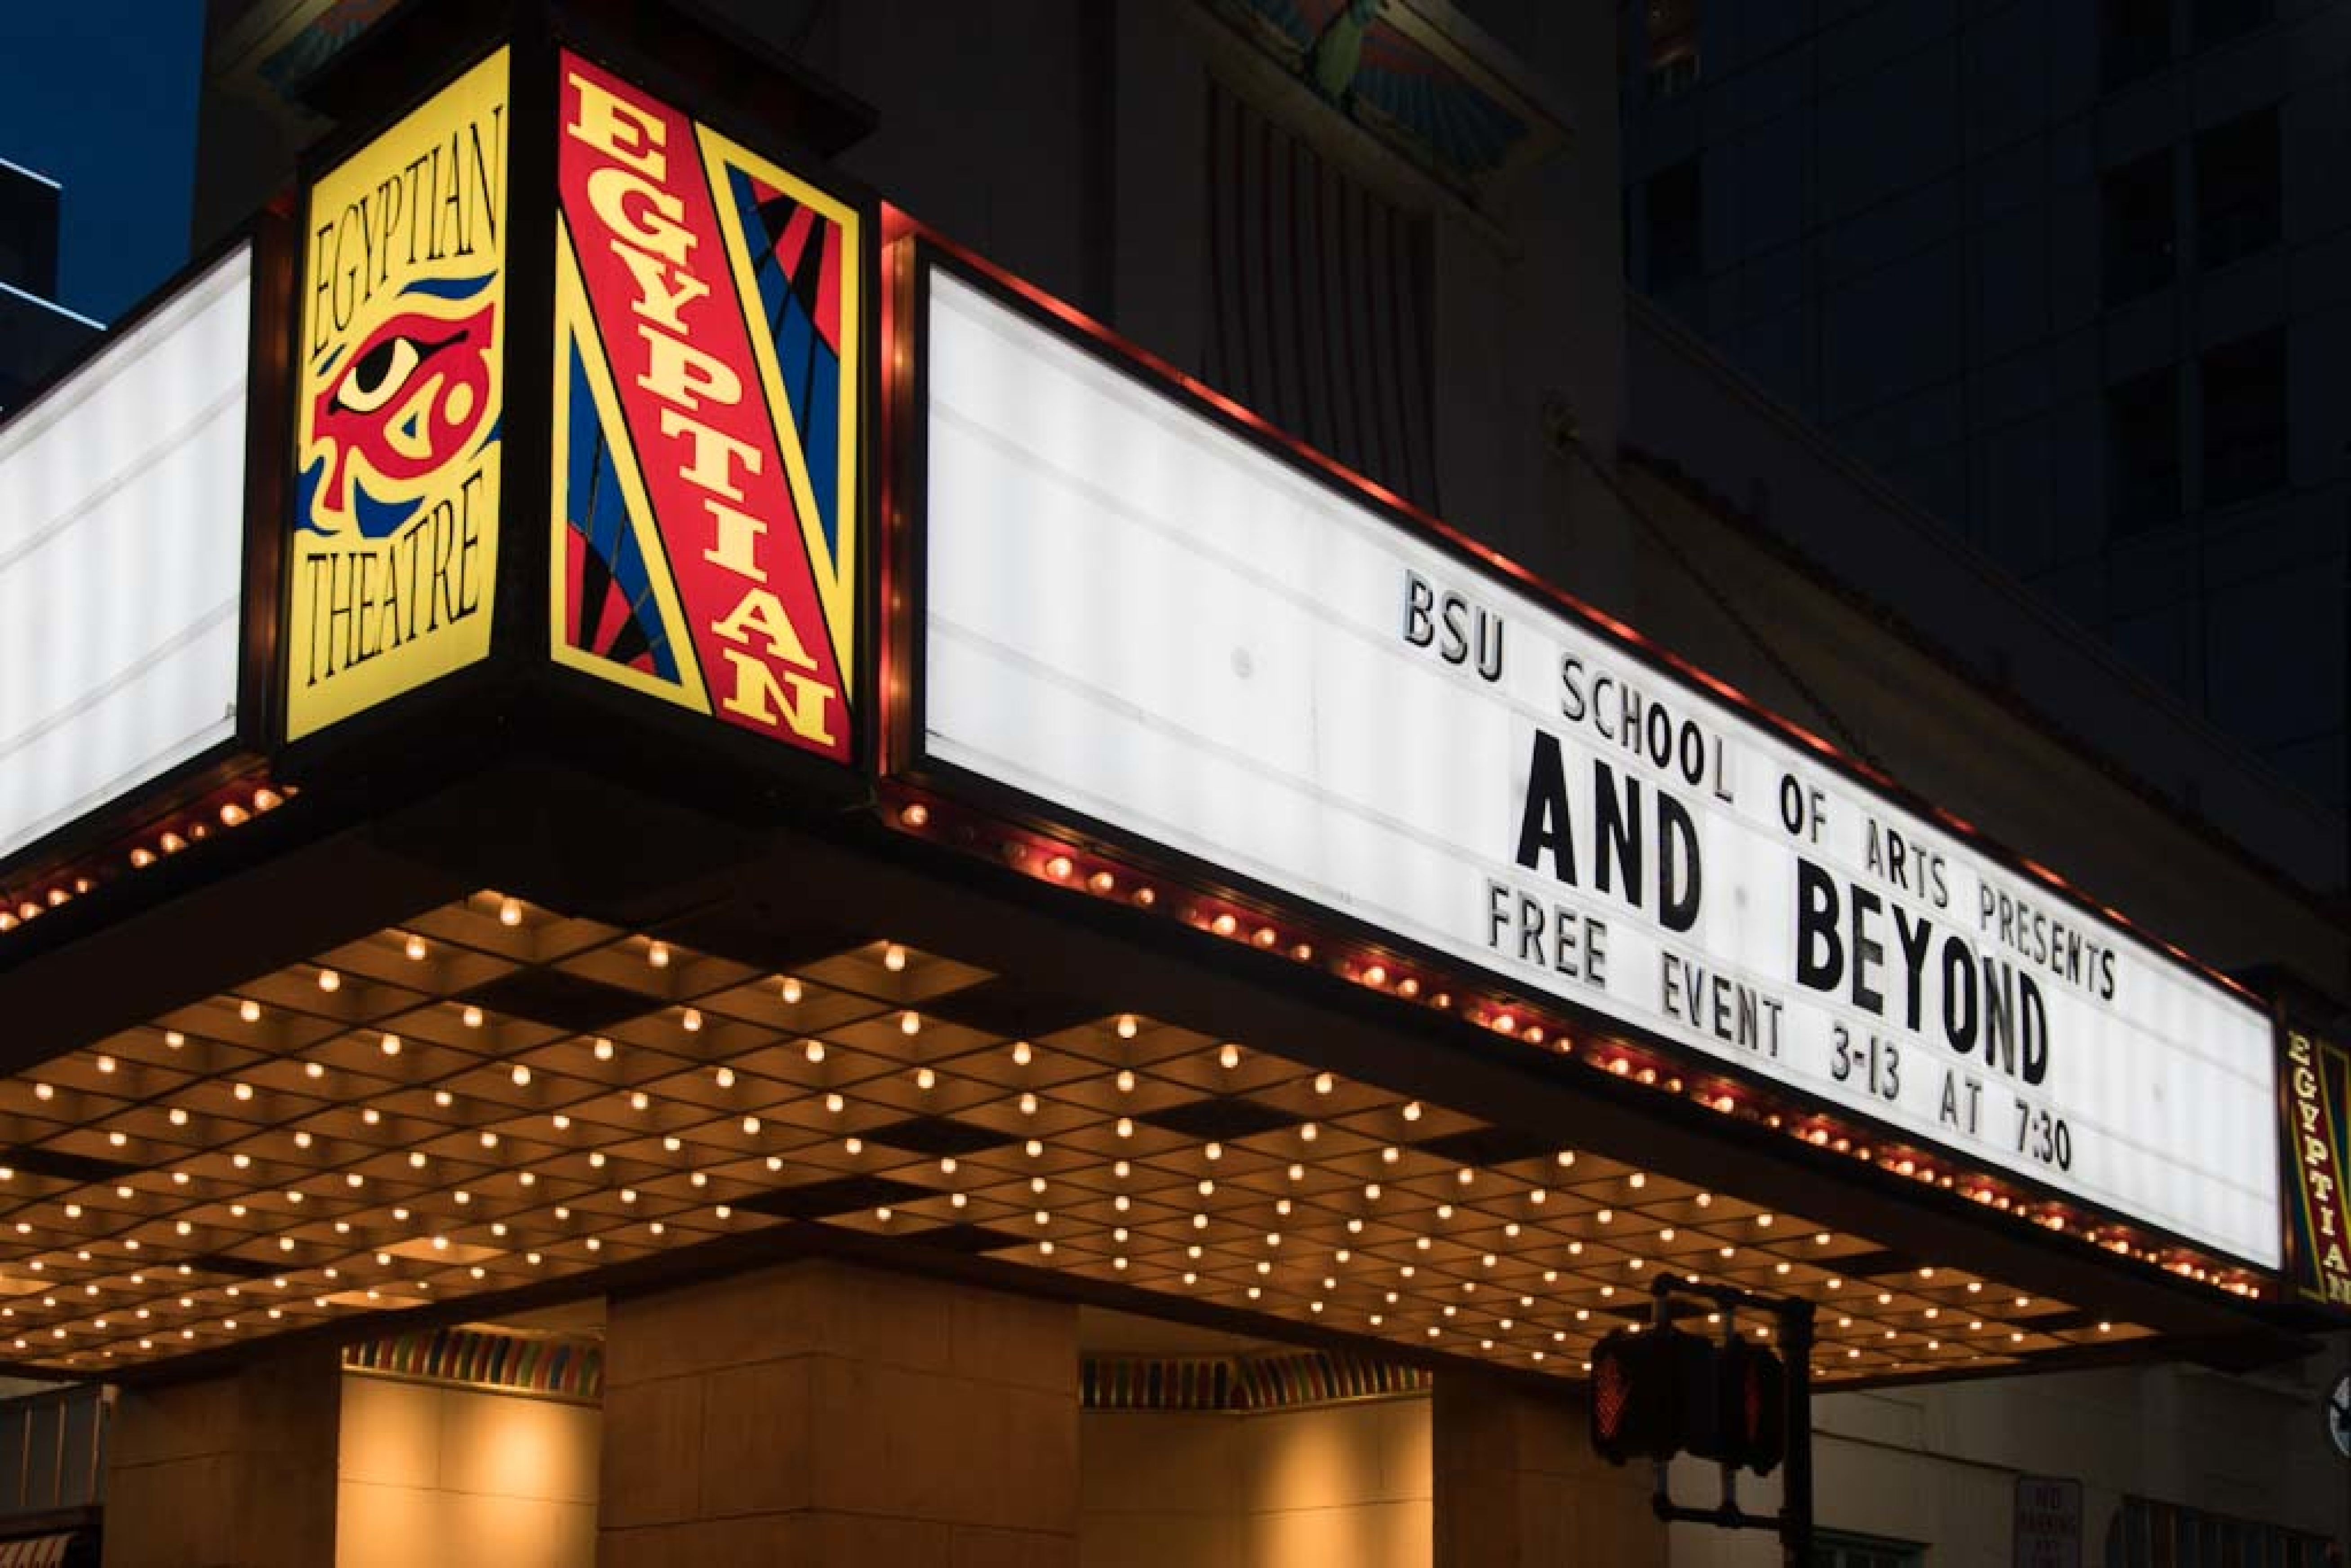 The Narrative Television Initiative, part of Boise State's Film and Television Arts program, screened its project And Beyond at The Egyptian Theatre in 2018.